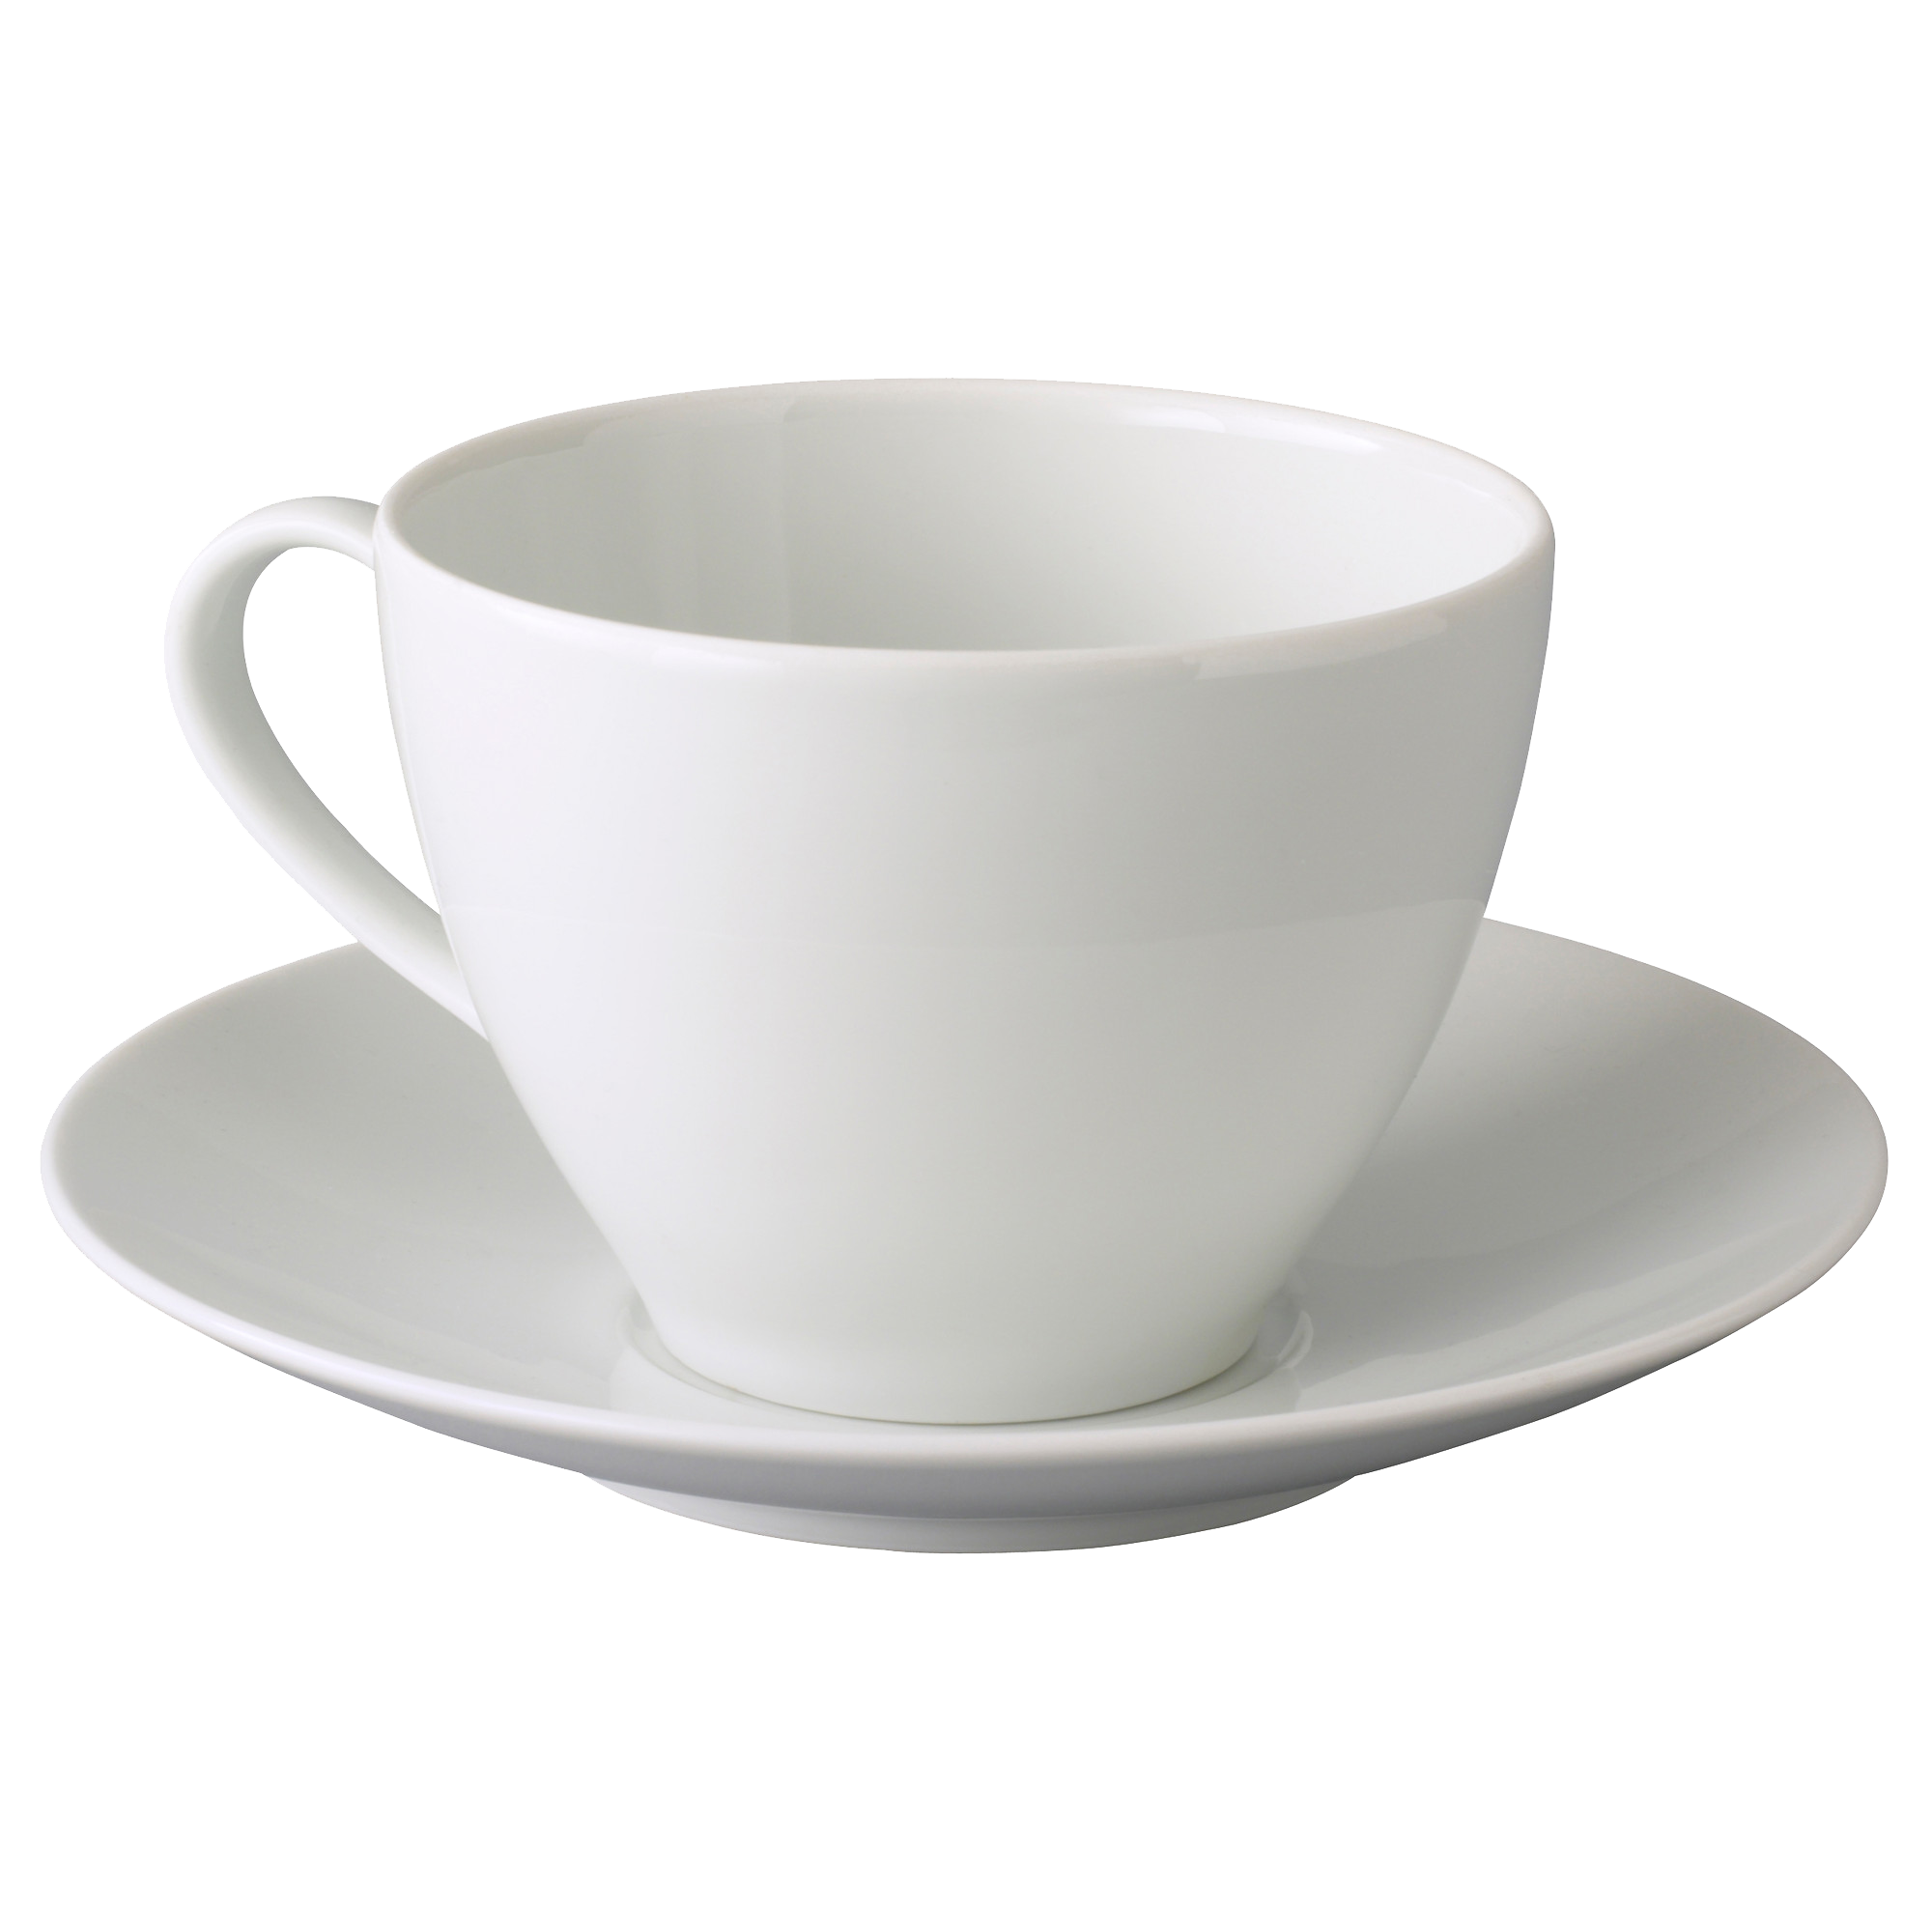 Tea Cup File PNG Image